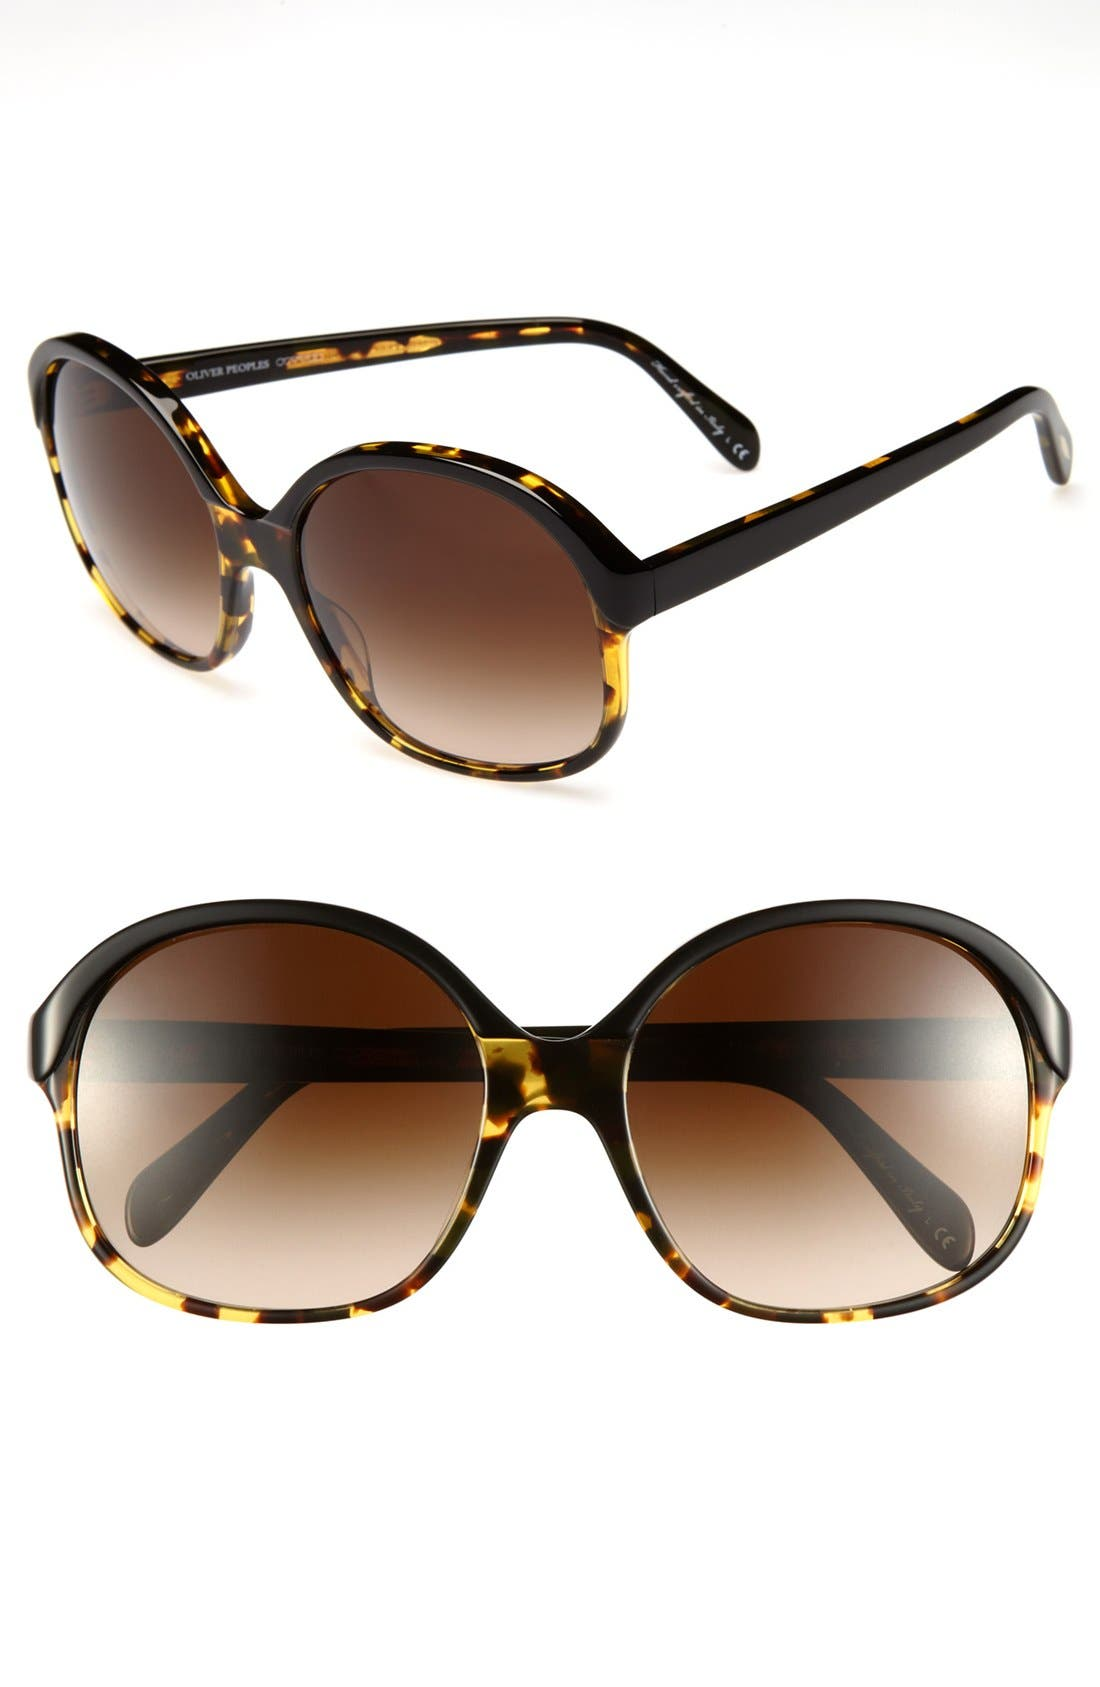 Main Image - Oliver Peoples 'Casandra' 61mm Sunglasses